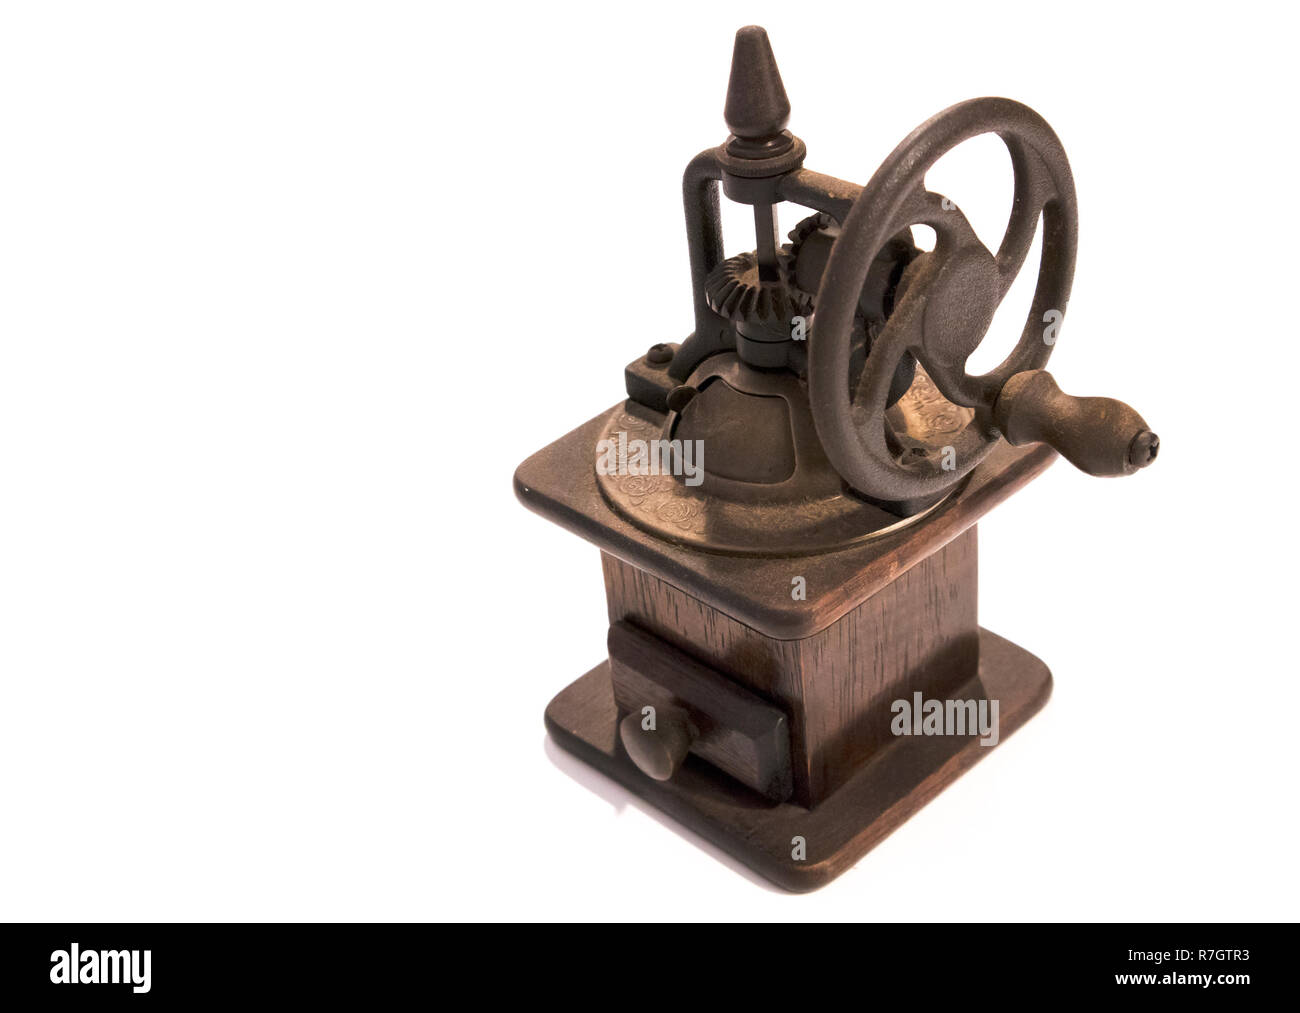 Old manual wooden coffee grinder with gear wheel isolated on white background - Stock Image